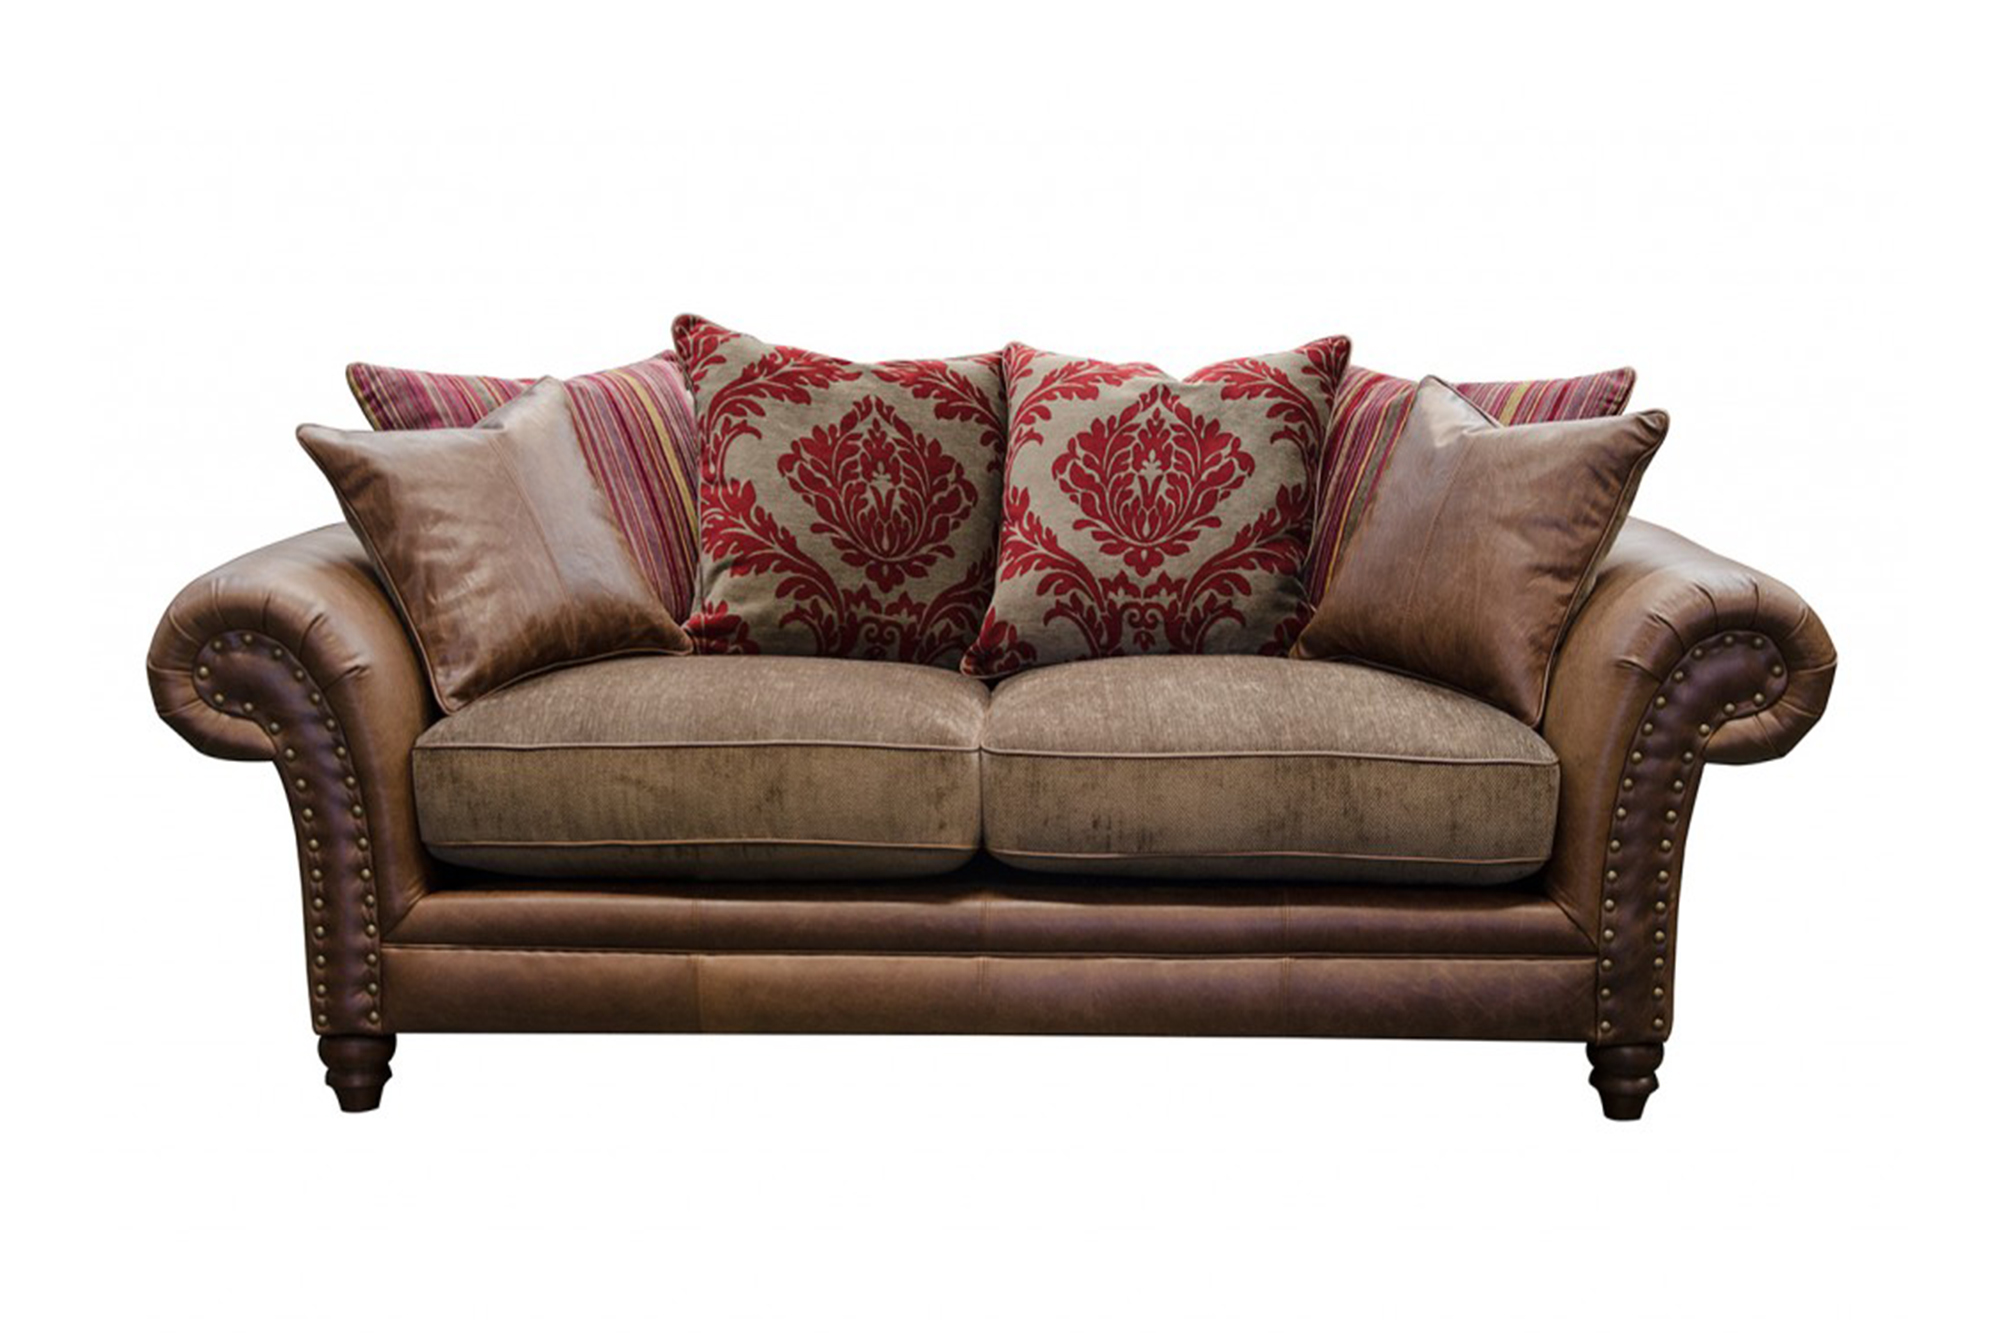 Admirable Hudson 3 Seater Sofa Alexander And James Pdpeps Interior Chair Design Pdpepsorg